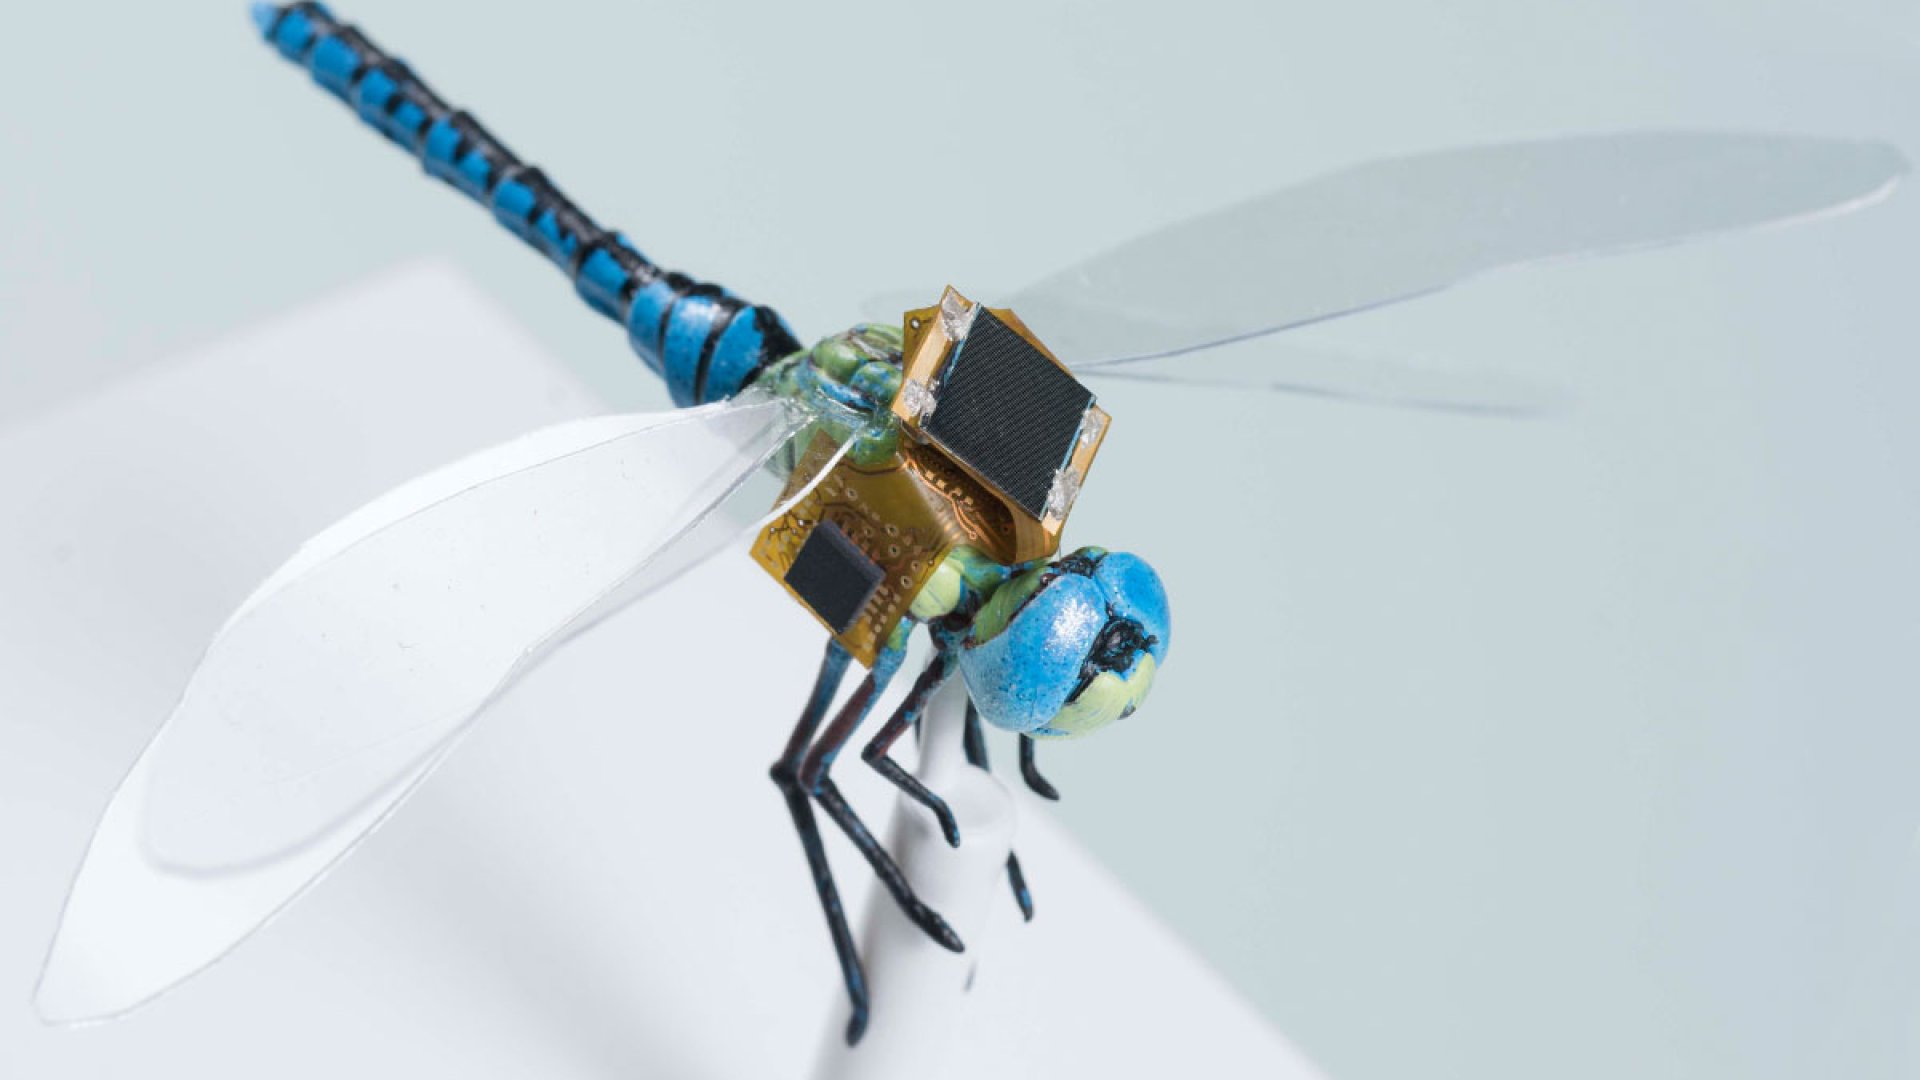 Tech Company is Turning Dragonflies into Controllable Mini Drones